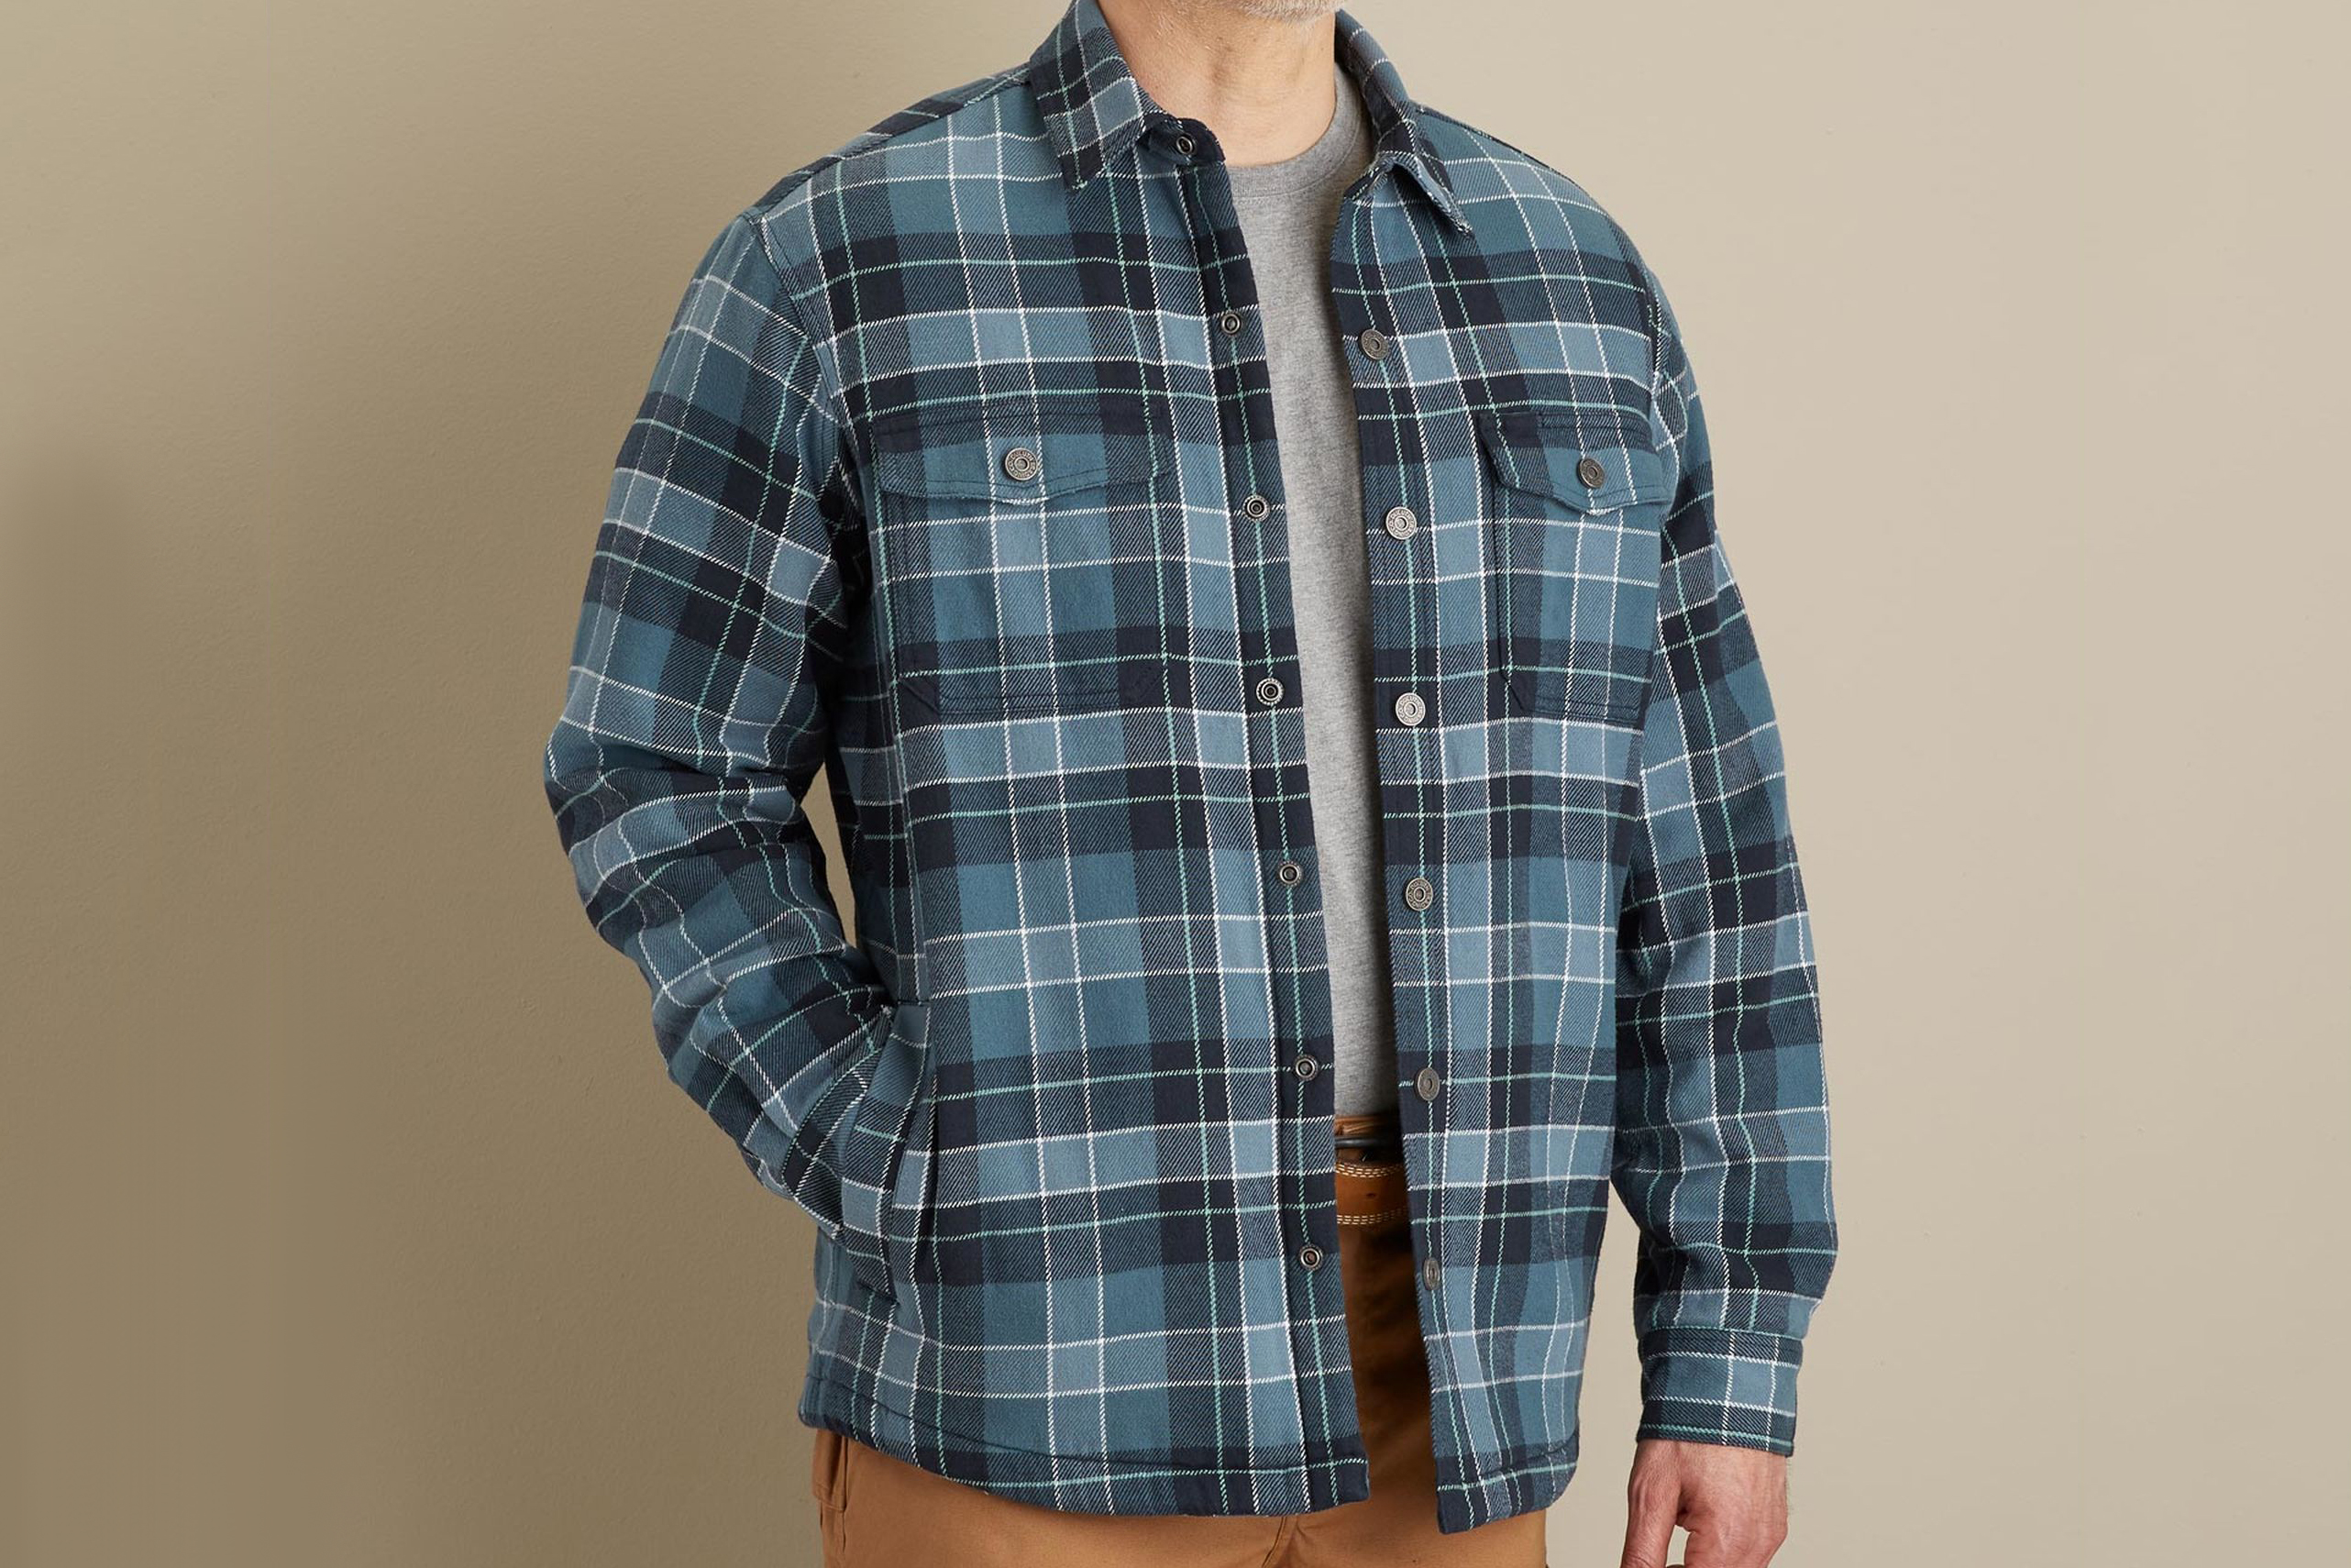 Duluth Trading Co. Flapjack Fleece-Lined Shirt Jac